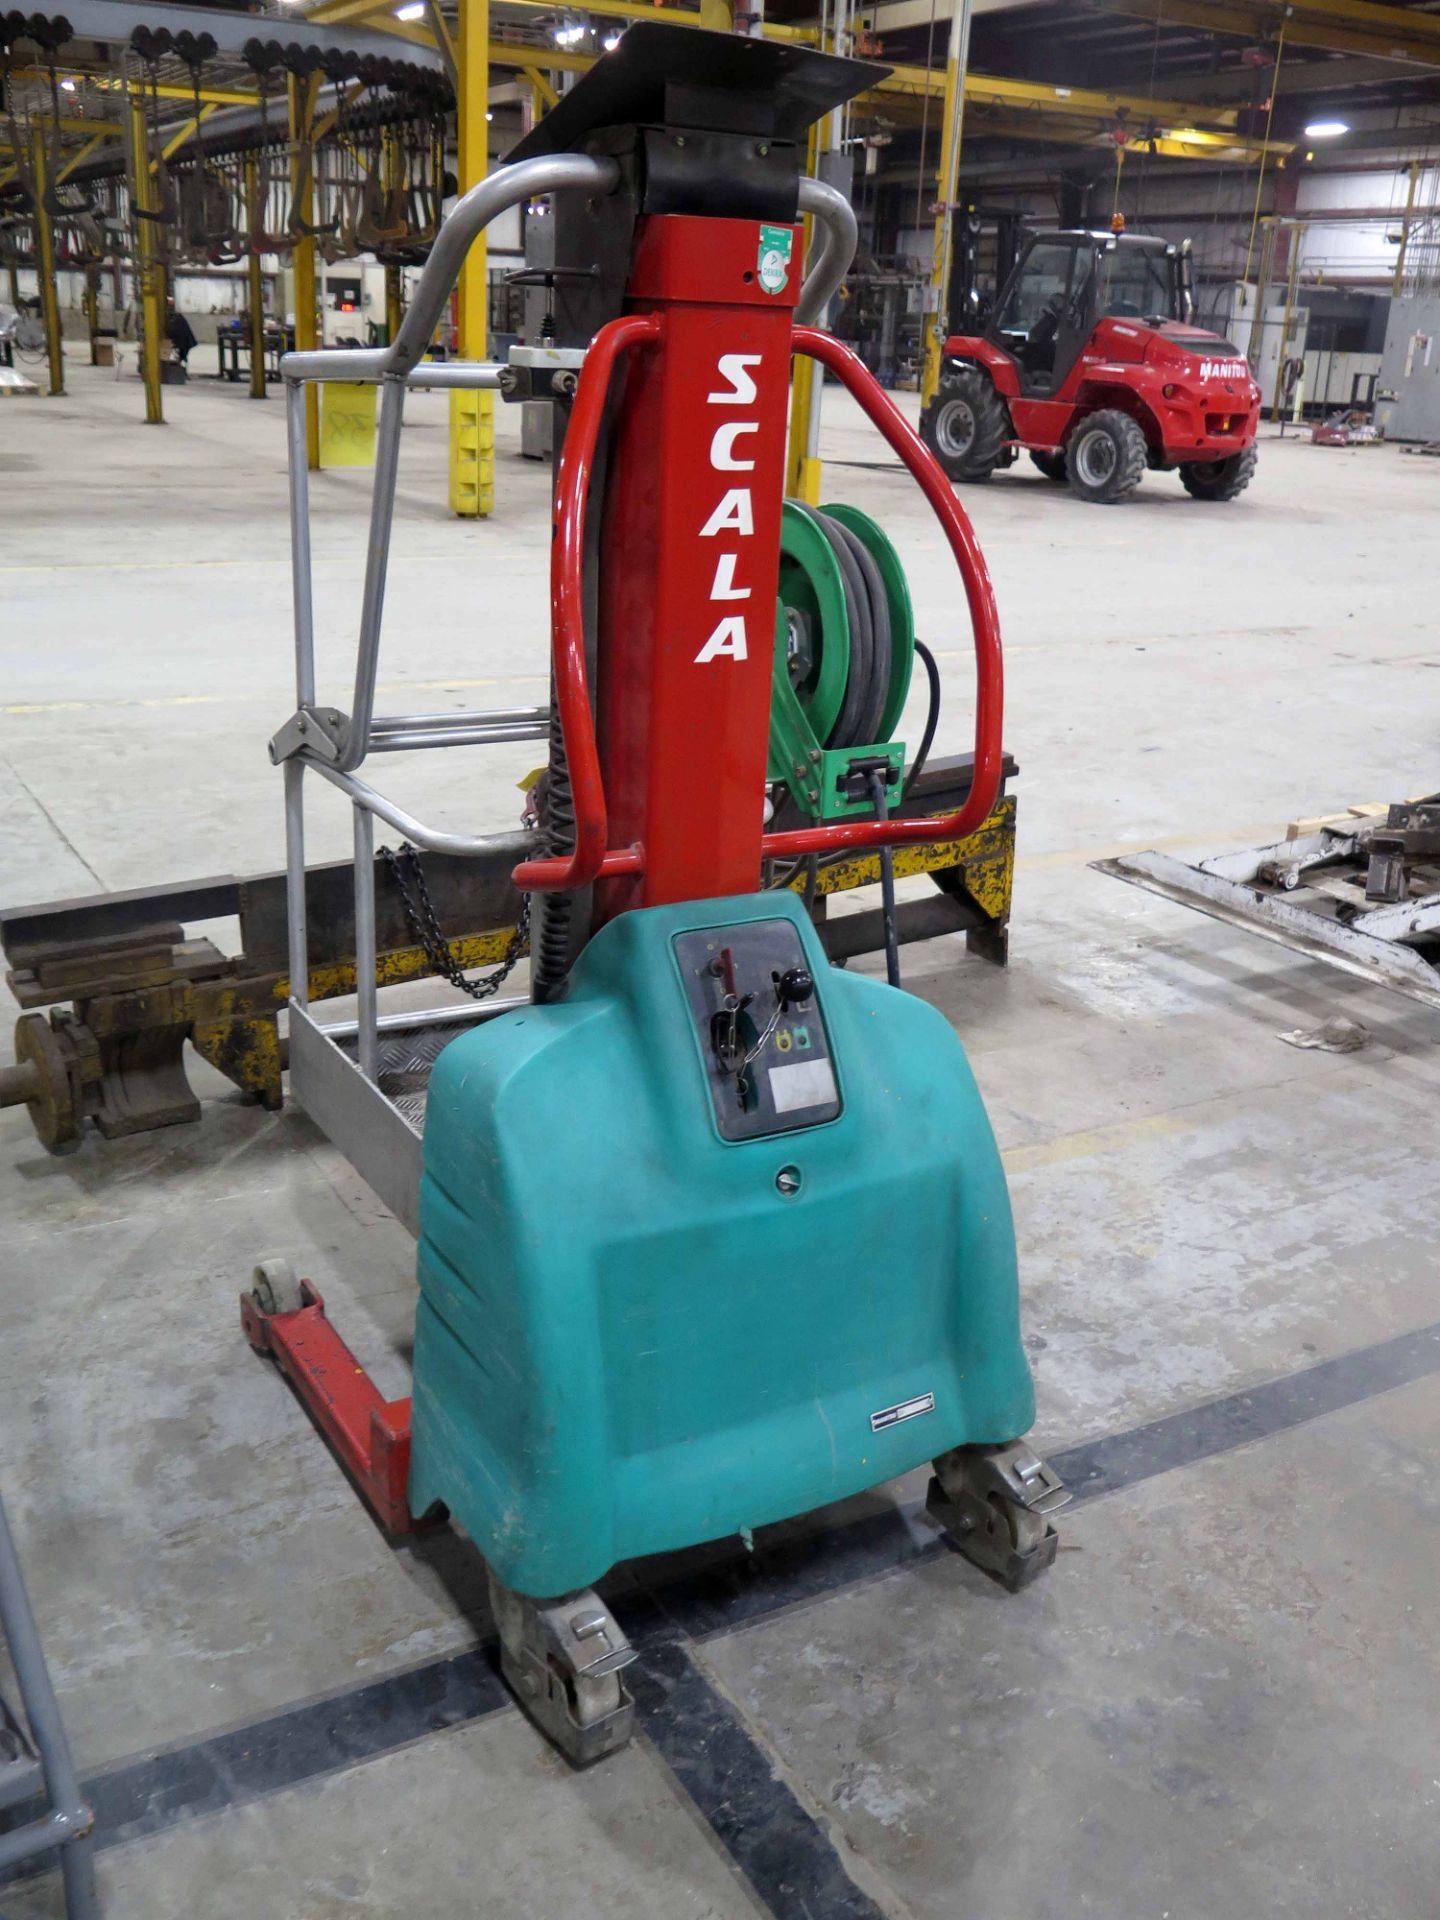 MANITOU ELECTRIC MANLIFT, MDL. SCALA, new 2005, 265 lb. cap., S/N 506986 - Image 2 of 2